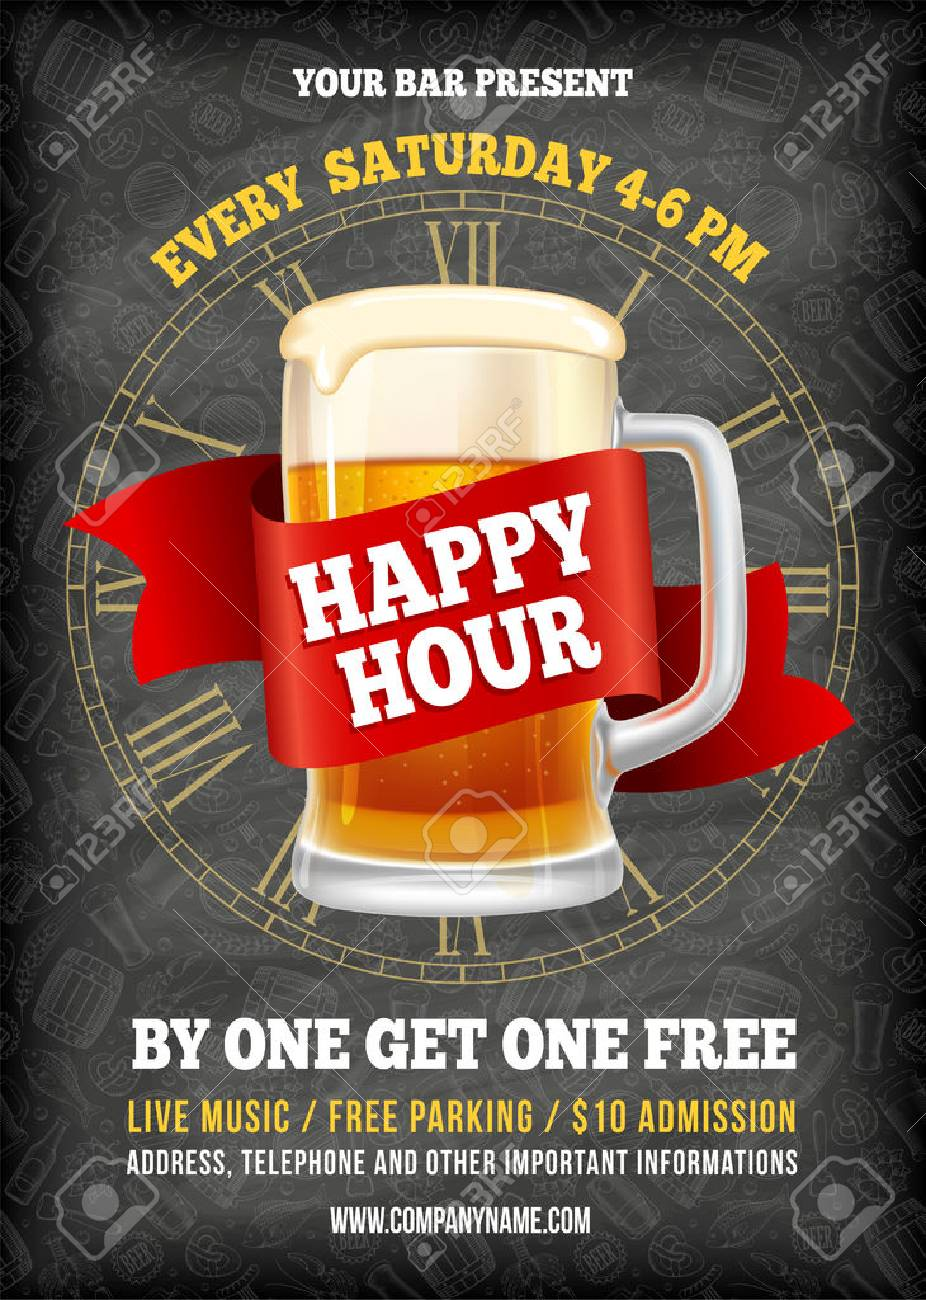 Happy Hour. Free beer. Vintage illustration template for web, poster, flyer, invitation to party. Vector stock illustration. - 81692251